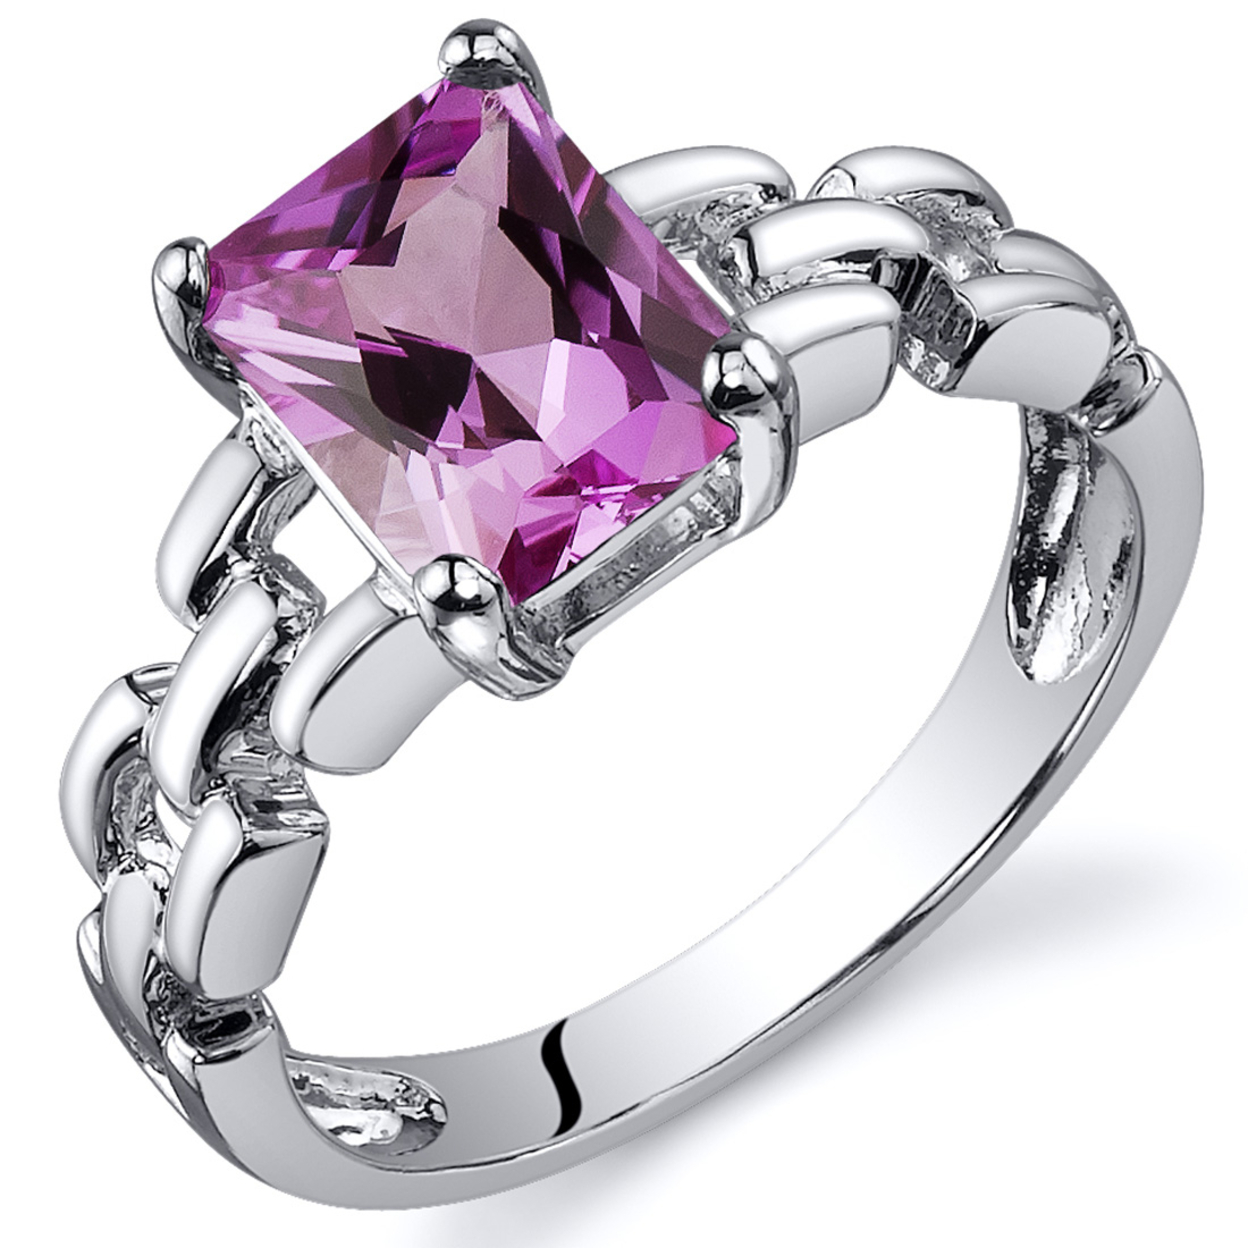 Oravo 2.00 Ct Created Pink Sapphire Engagement Ring In Rhodium-plated Sterling Silver, Sizes 5-9